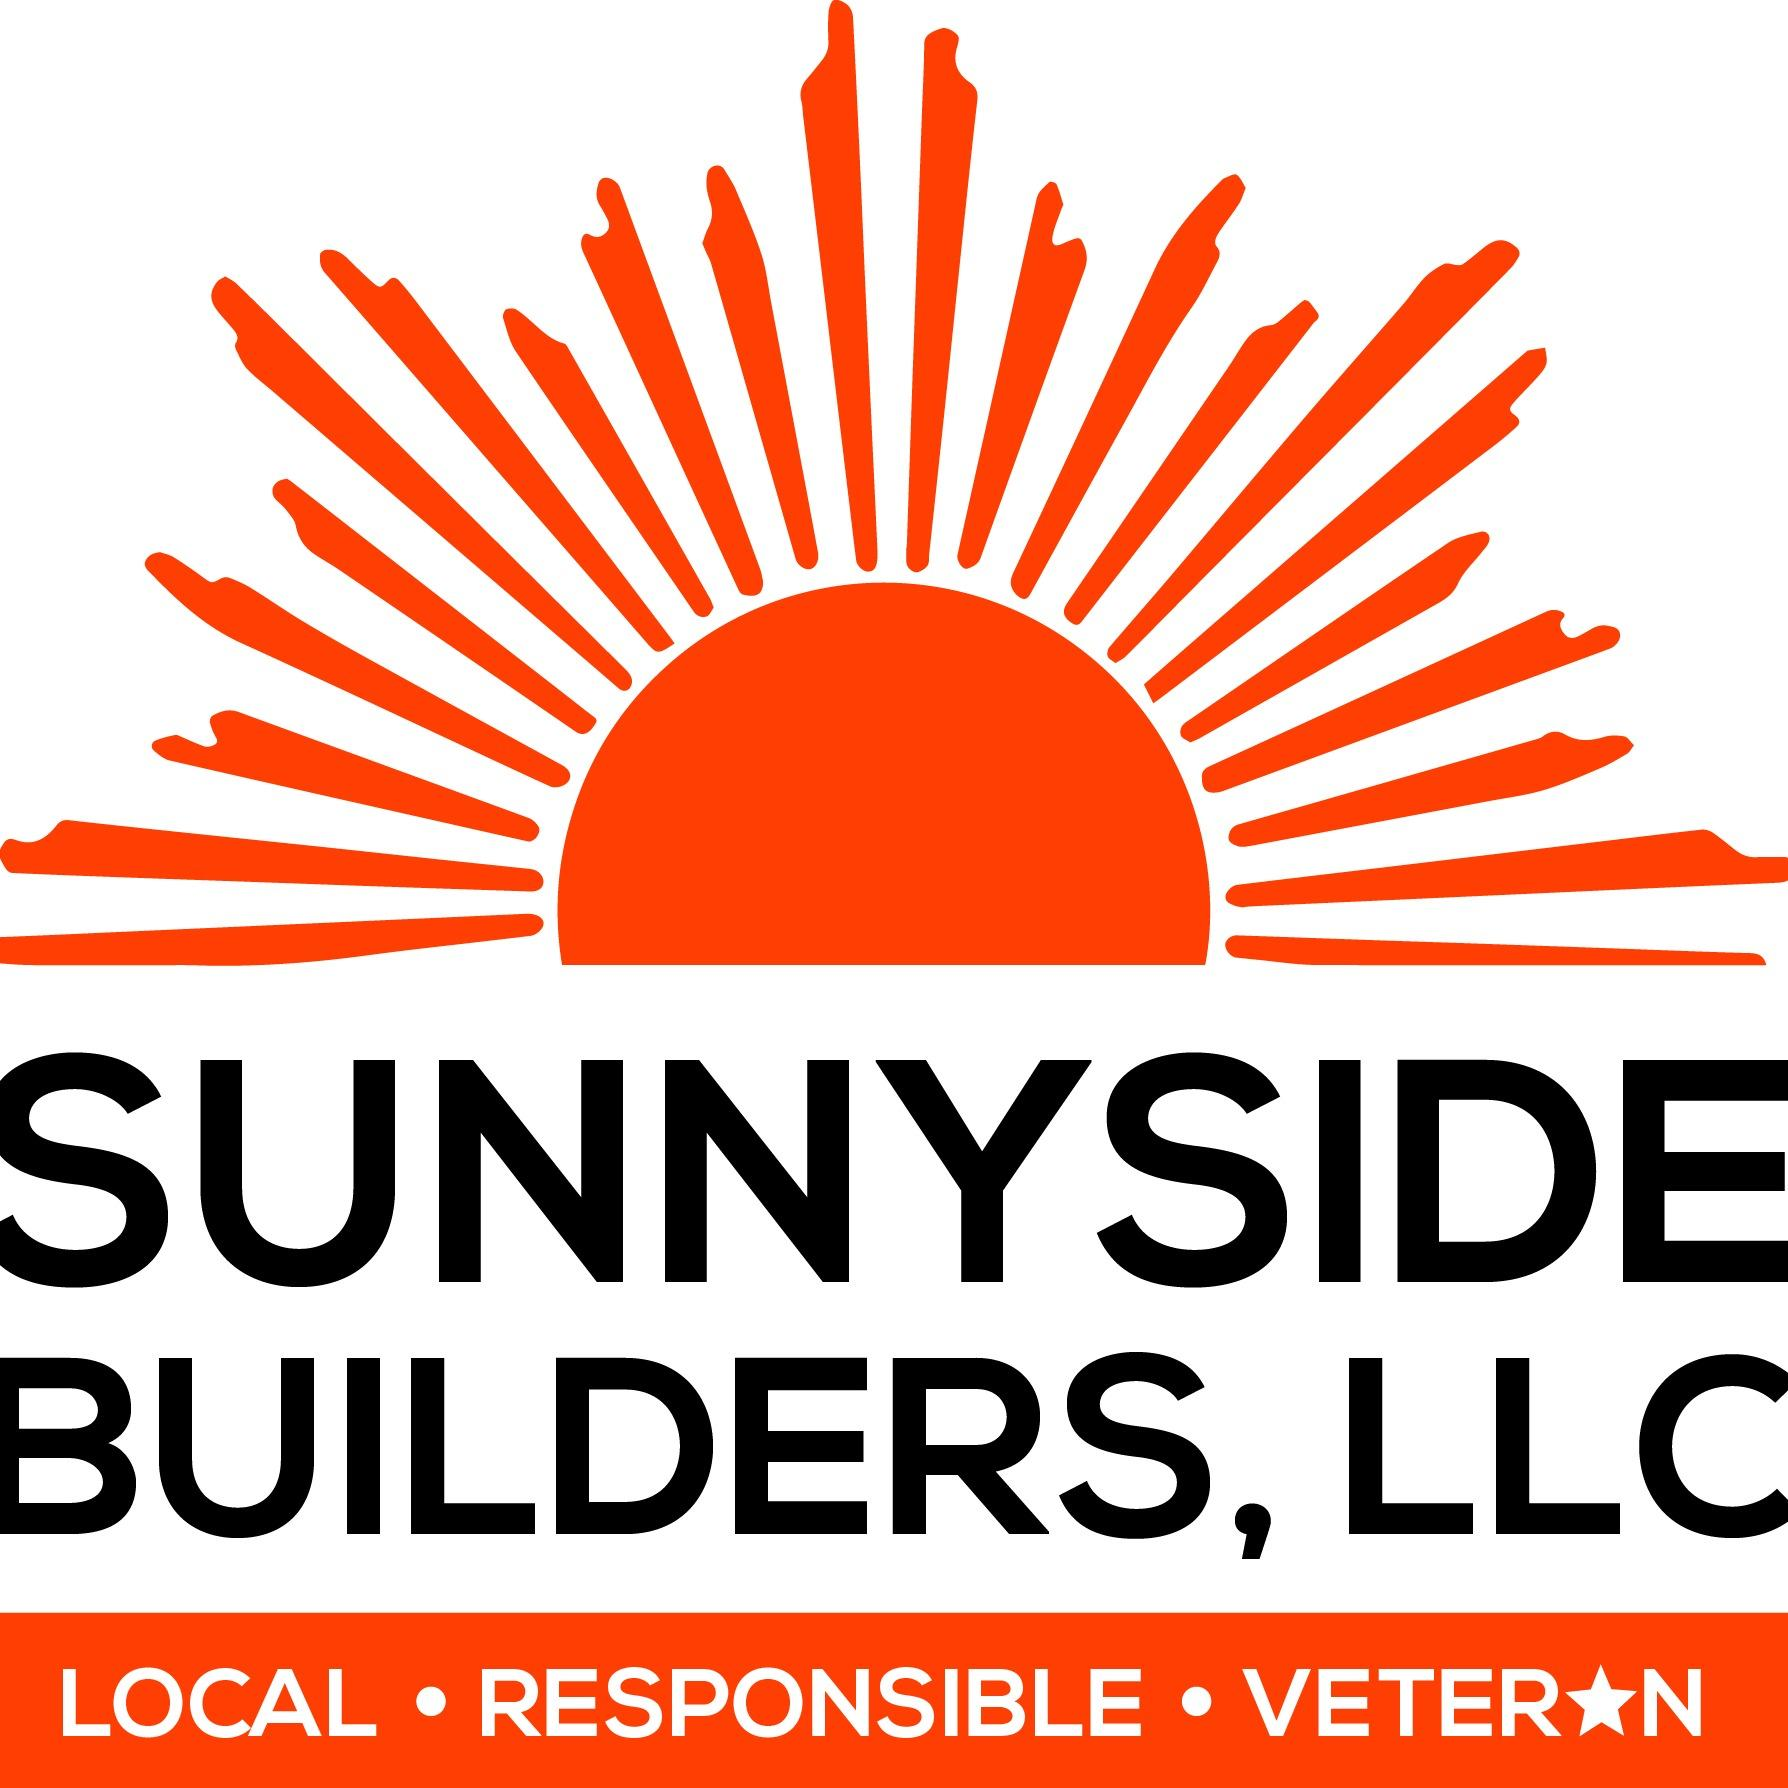 Sunnyside builders coupons near me in denver 8coupons for Local builders near me